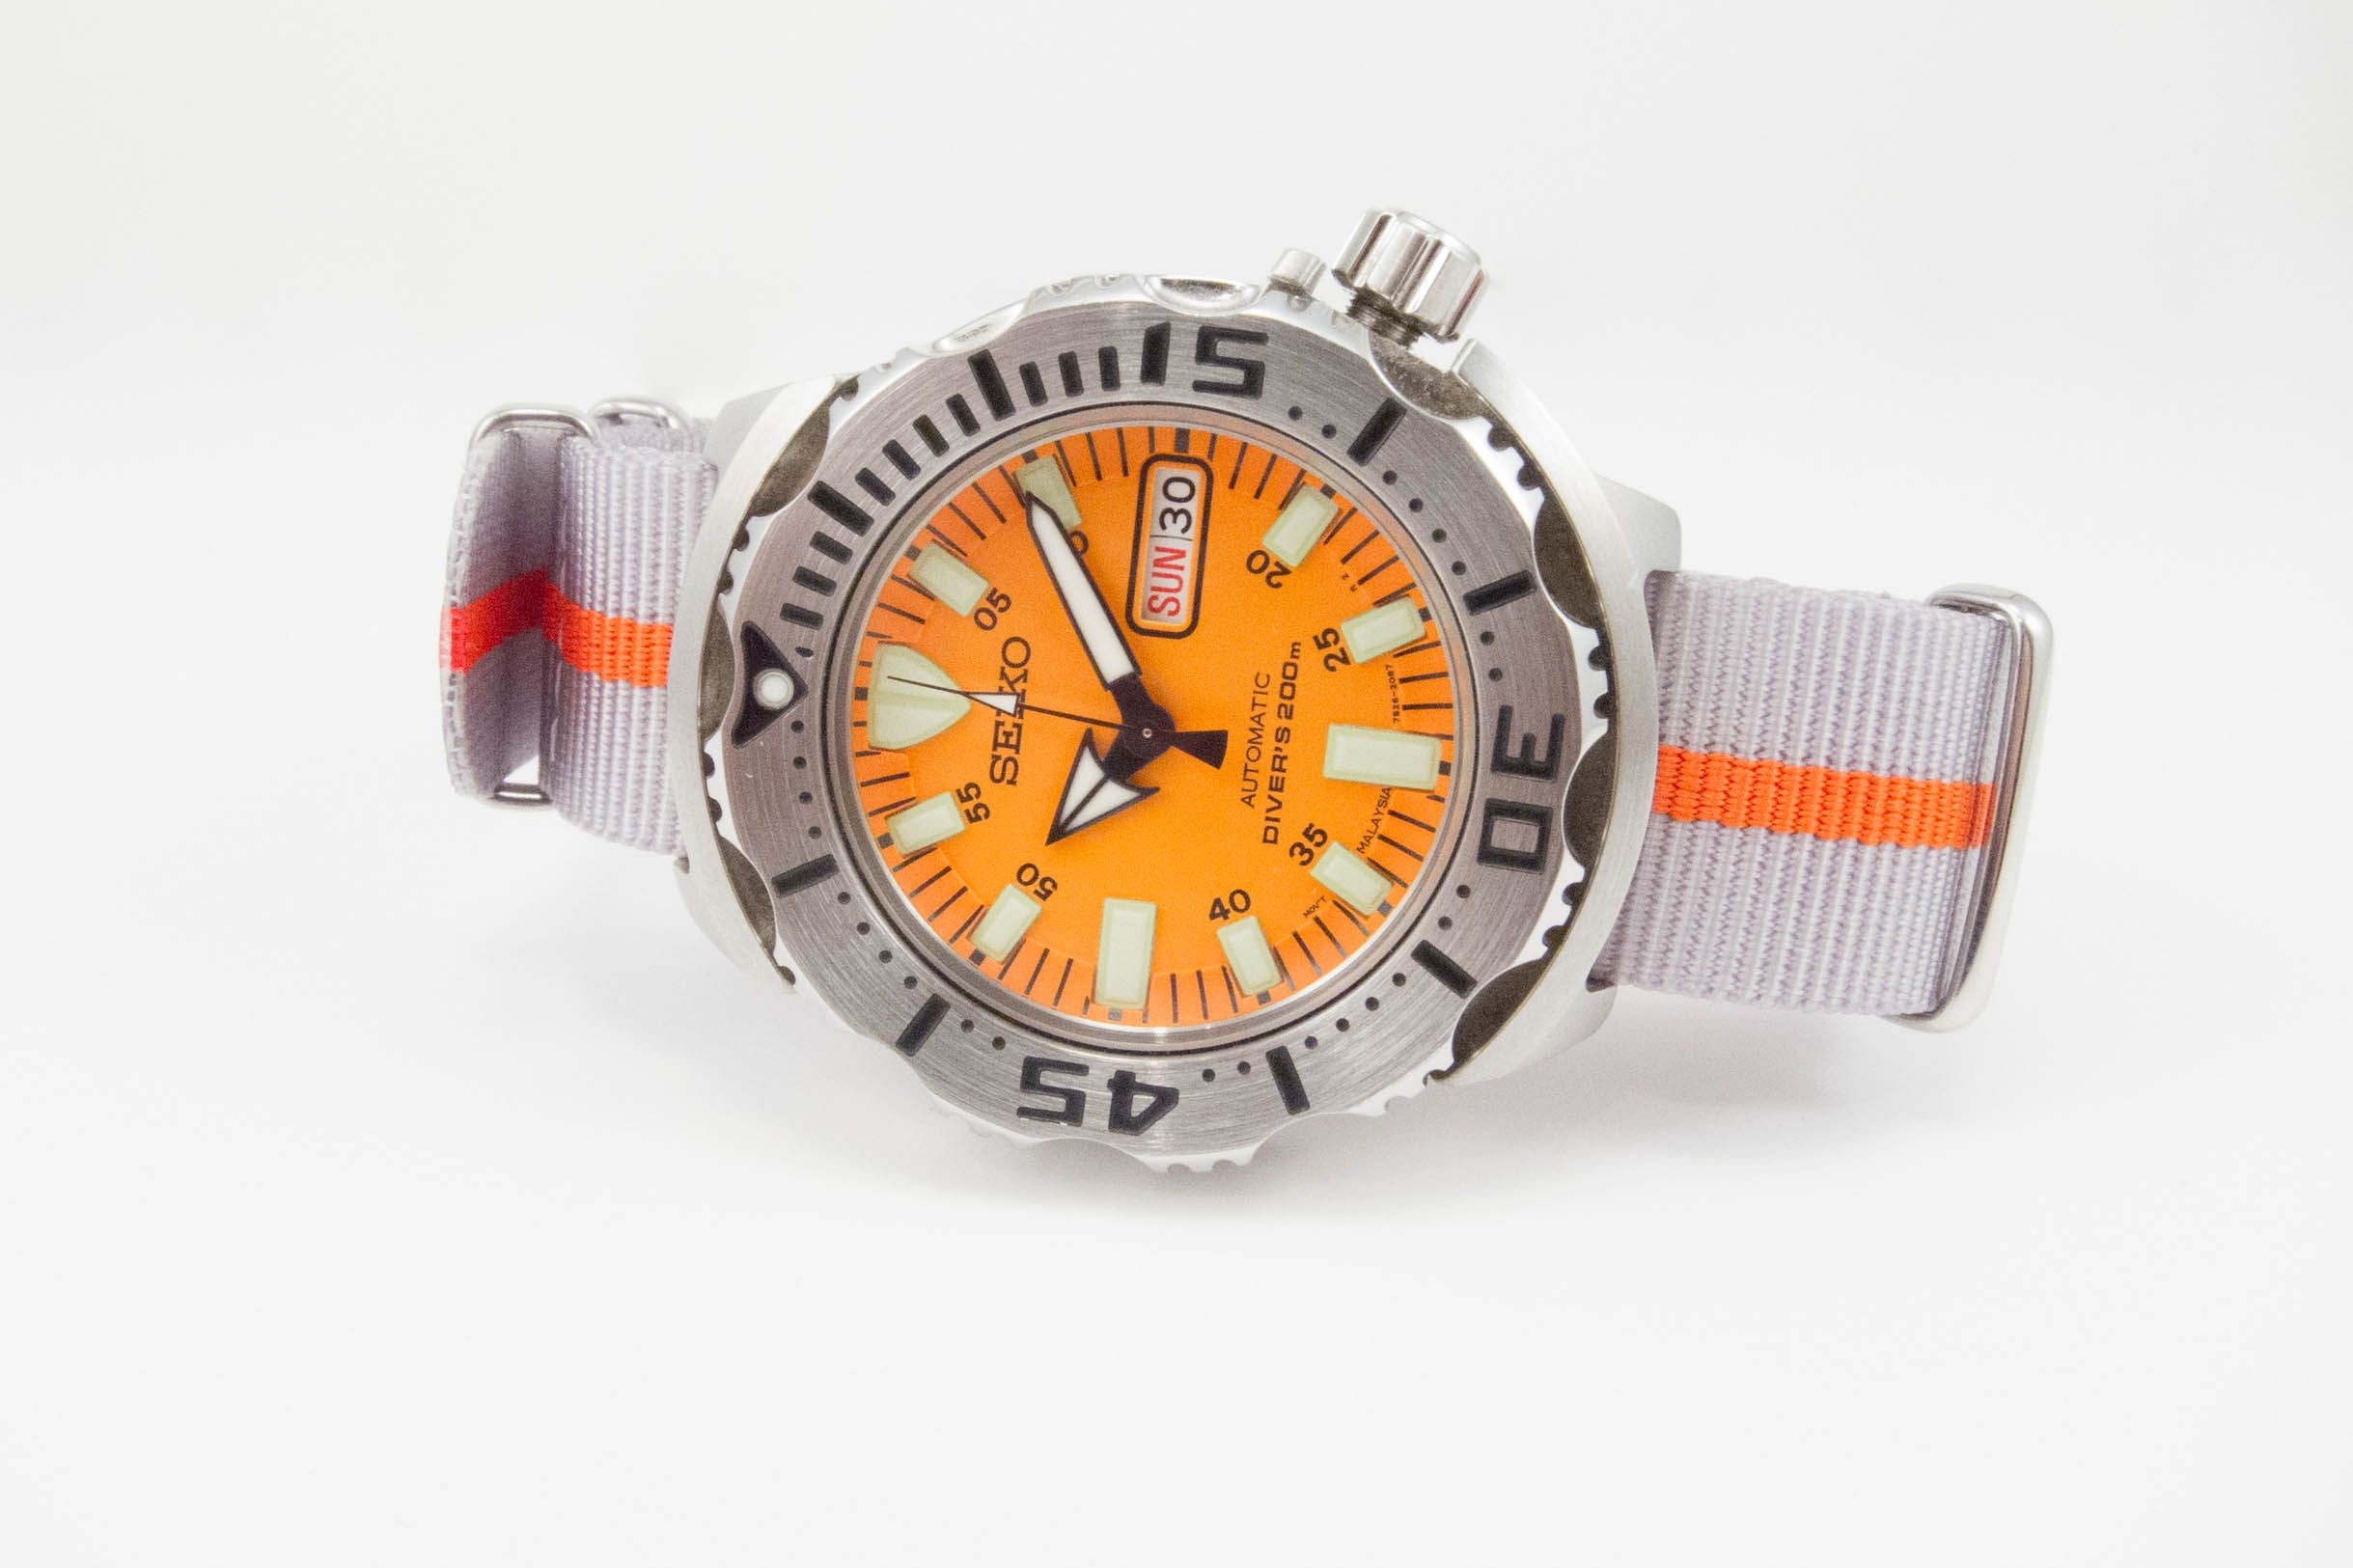 Gray and Orange on a Seiko Monster. Looking fantastic!